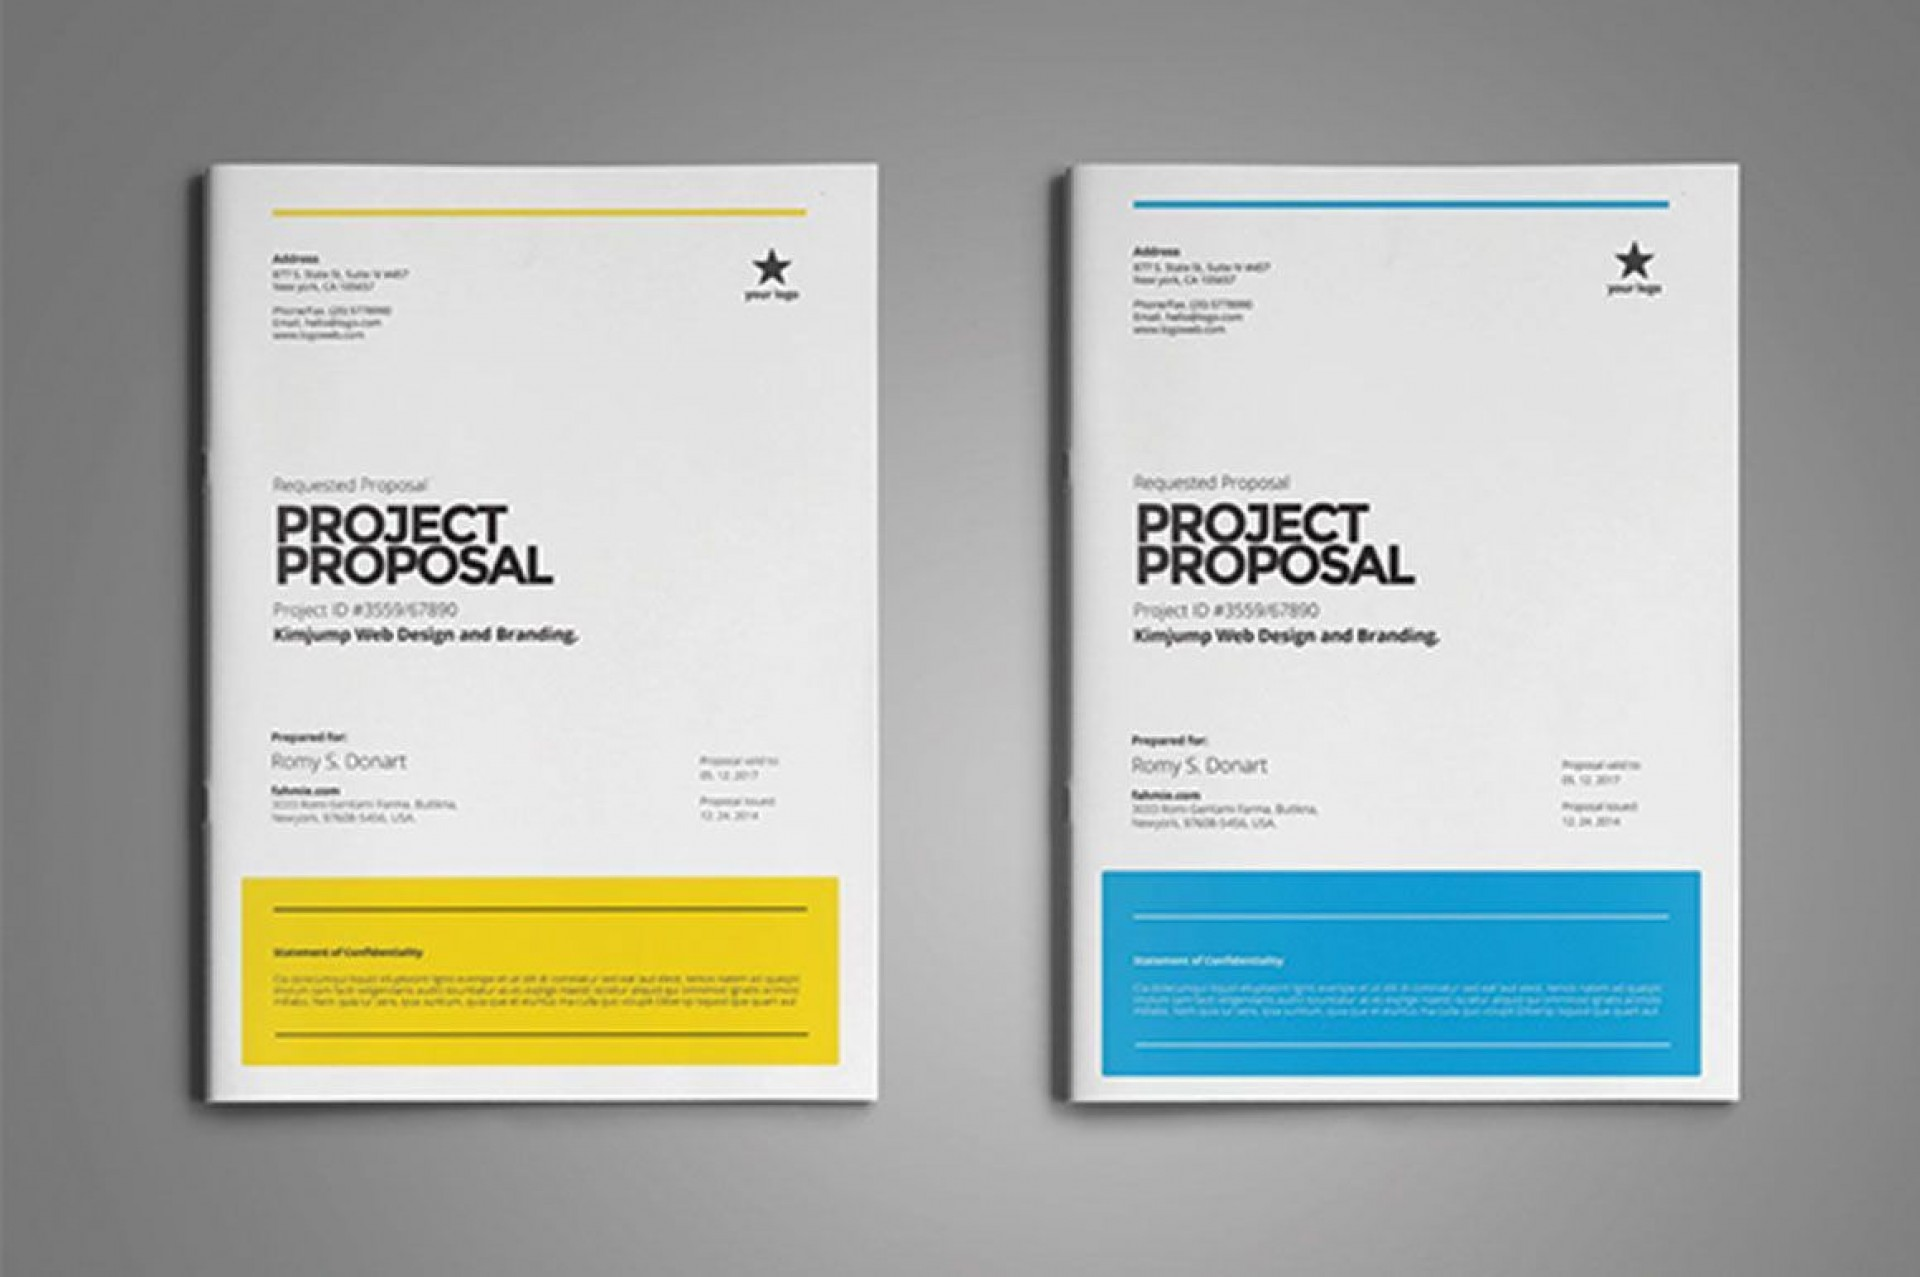 003 Staggering Graphic Design Proposal Template Word High Def 1920